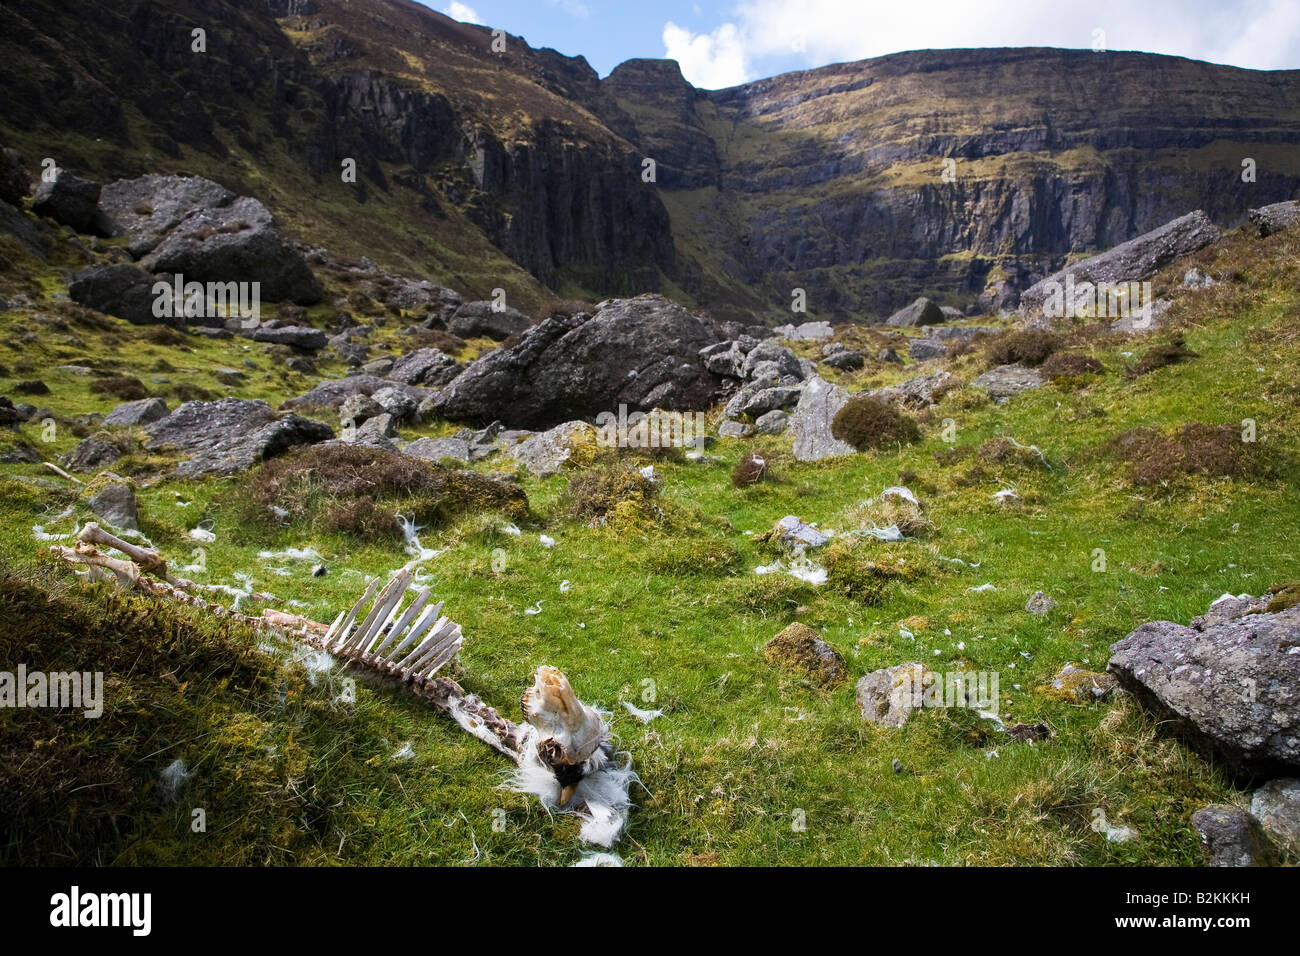 Dead Sheep in the Comeragh Mountains, Near Coumshingaun Lough, County Waterford, Ireland - Stock Image